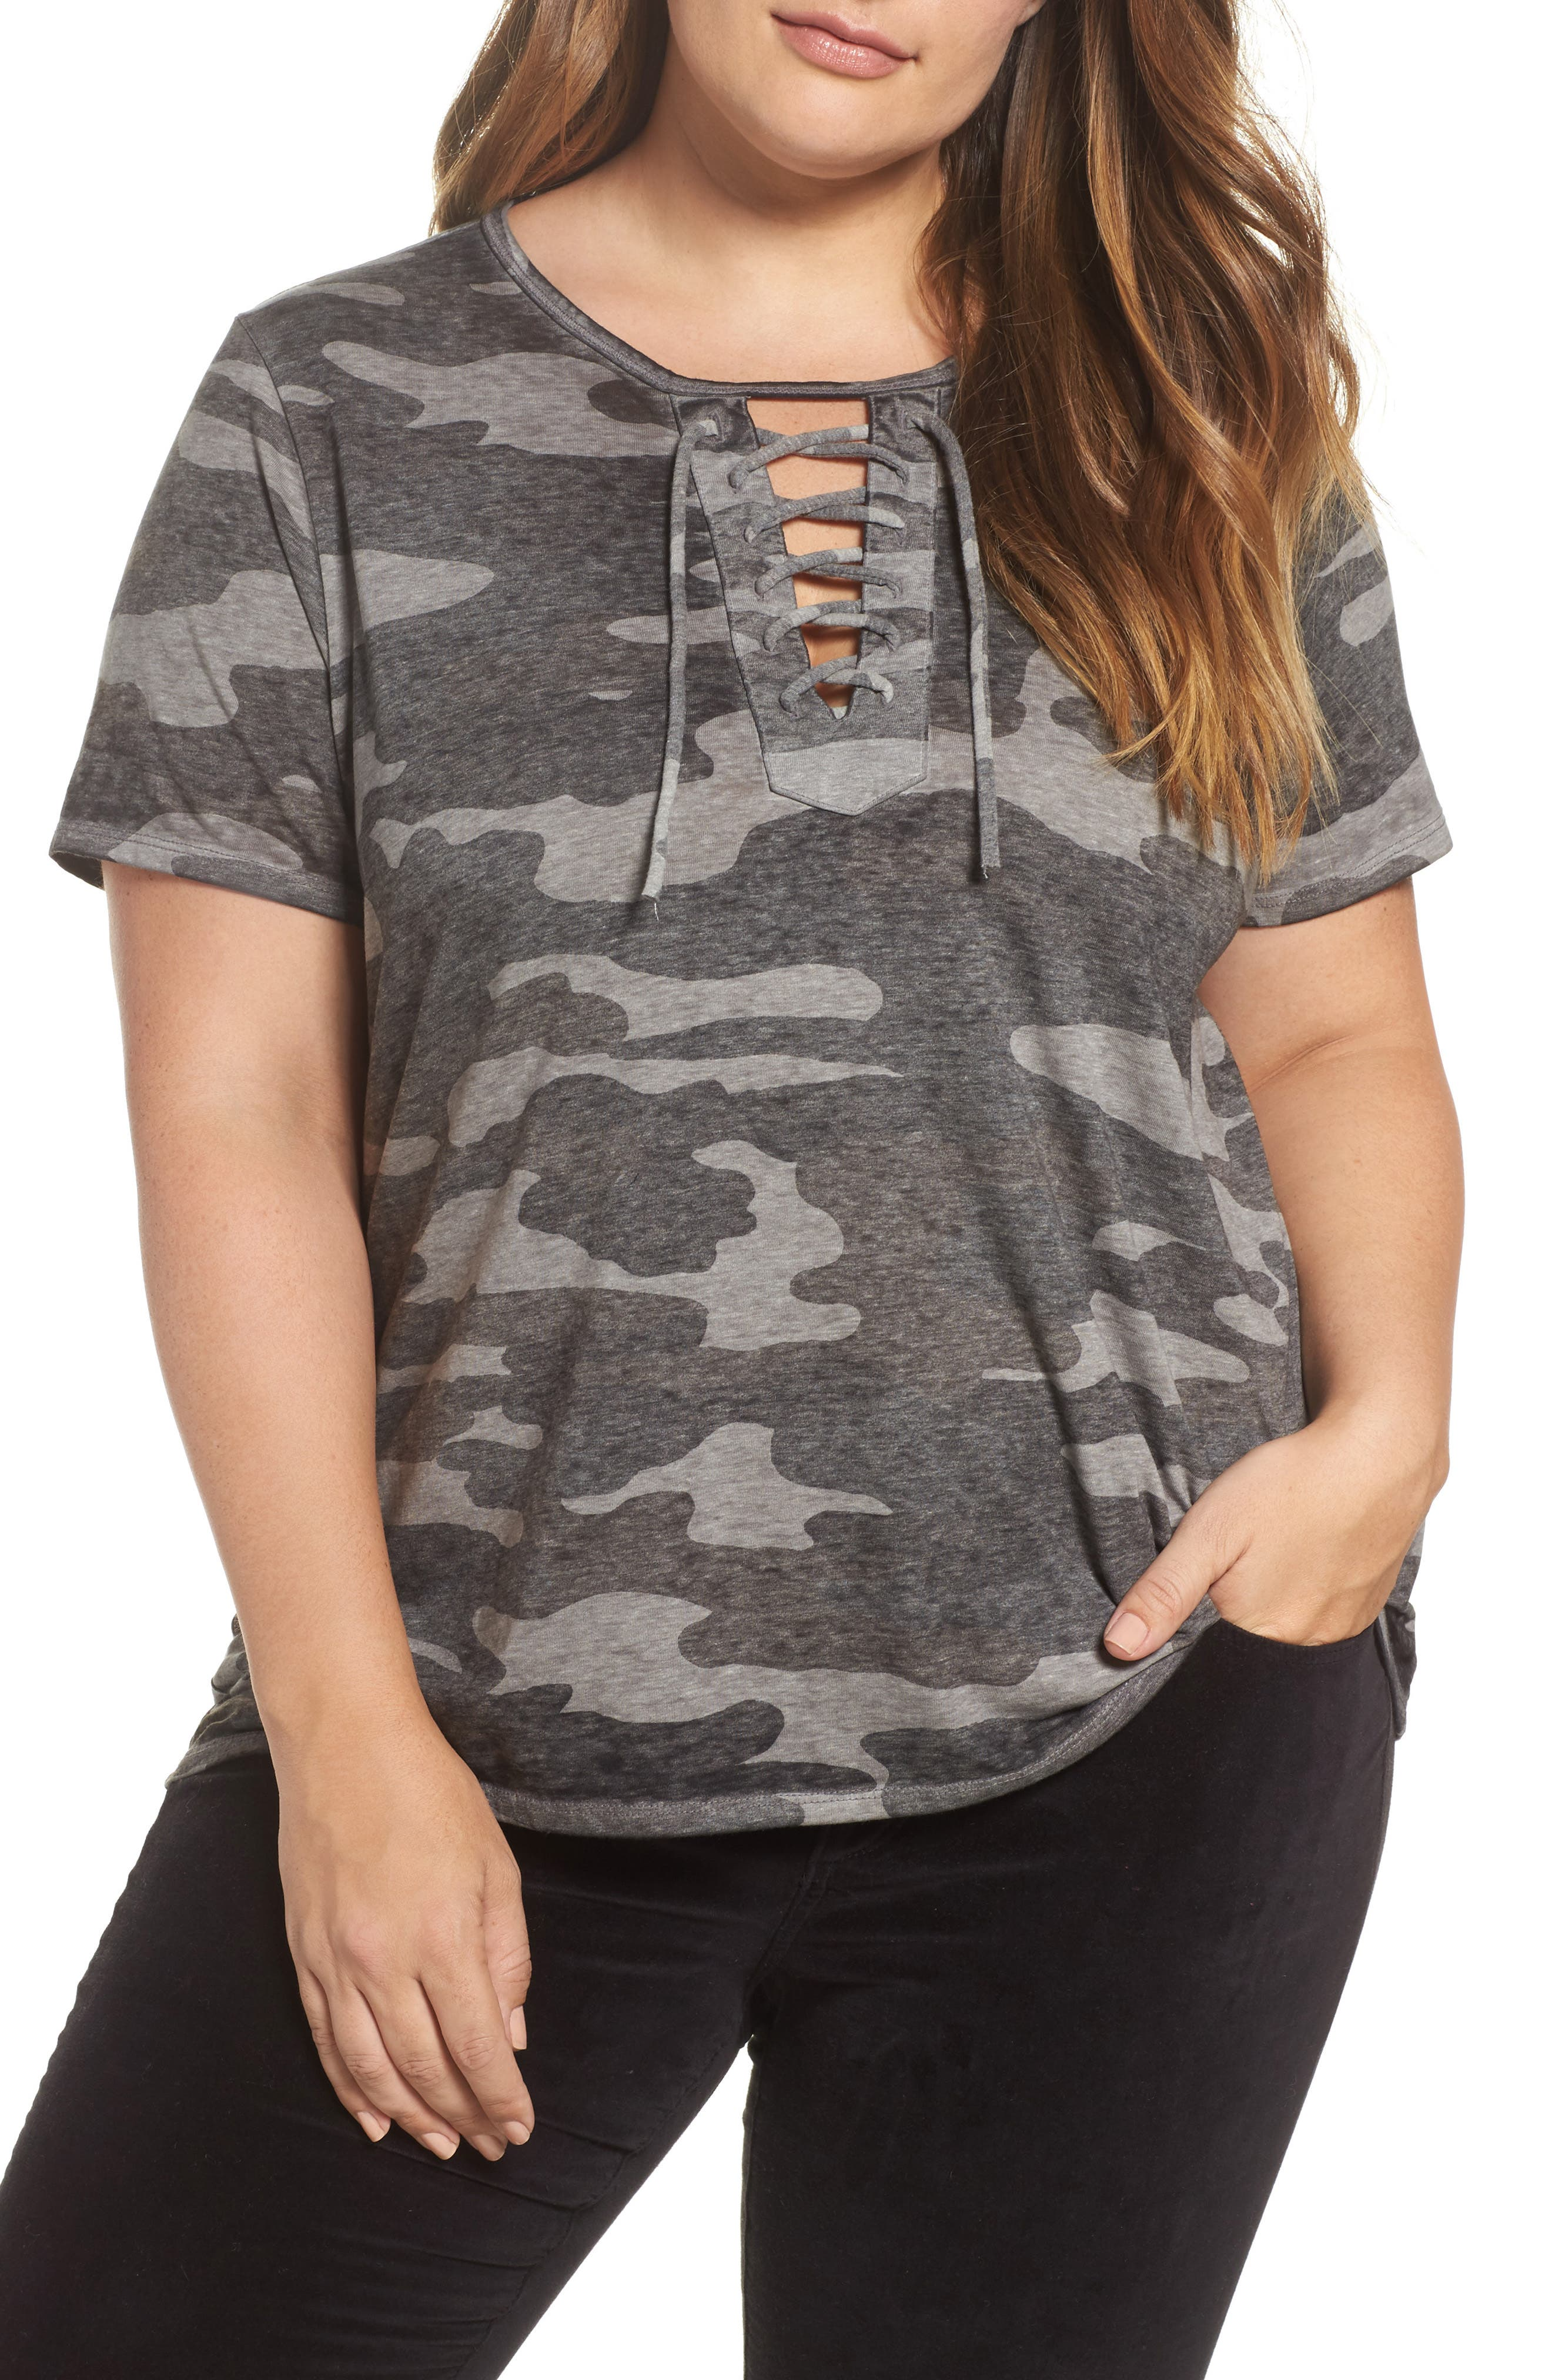 LUCKY BRAND Lace-Up Camo Tee, Main, color, GREY MULTI